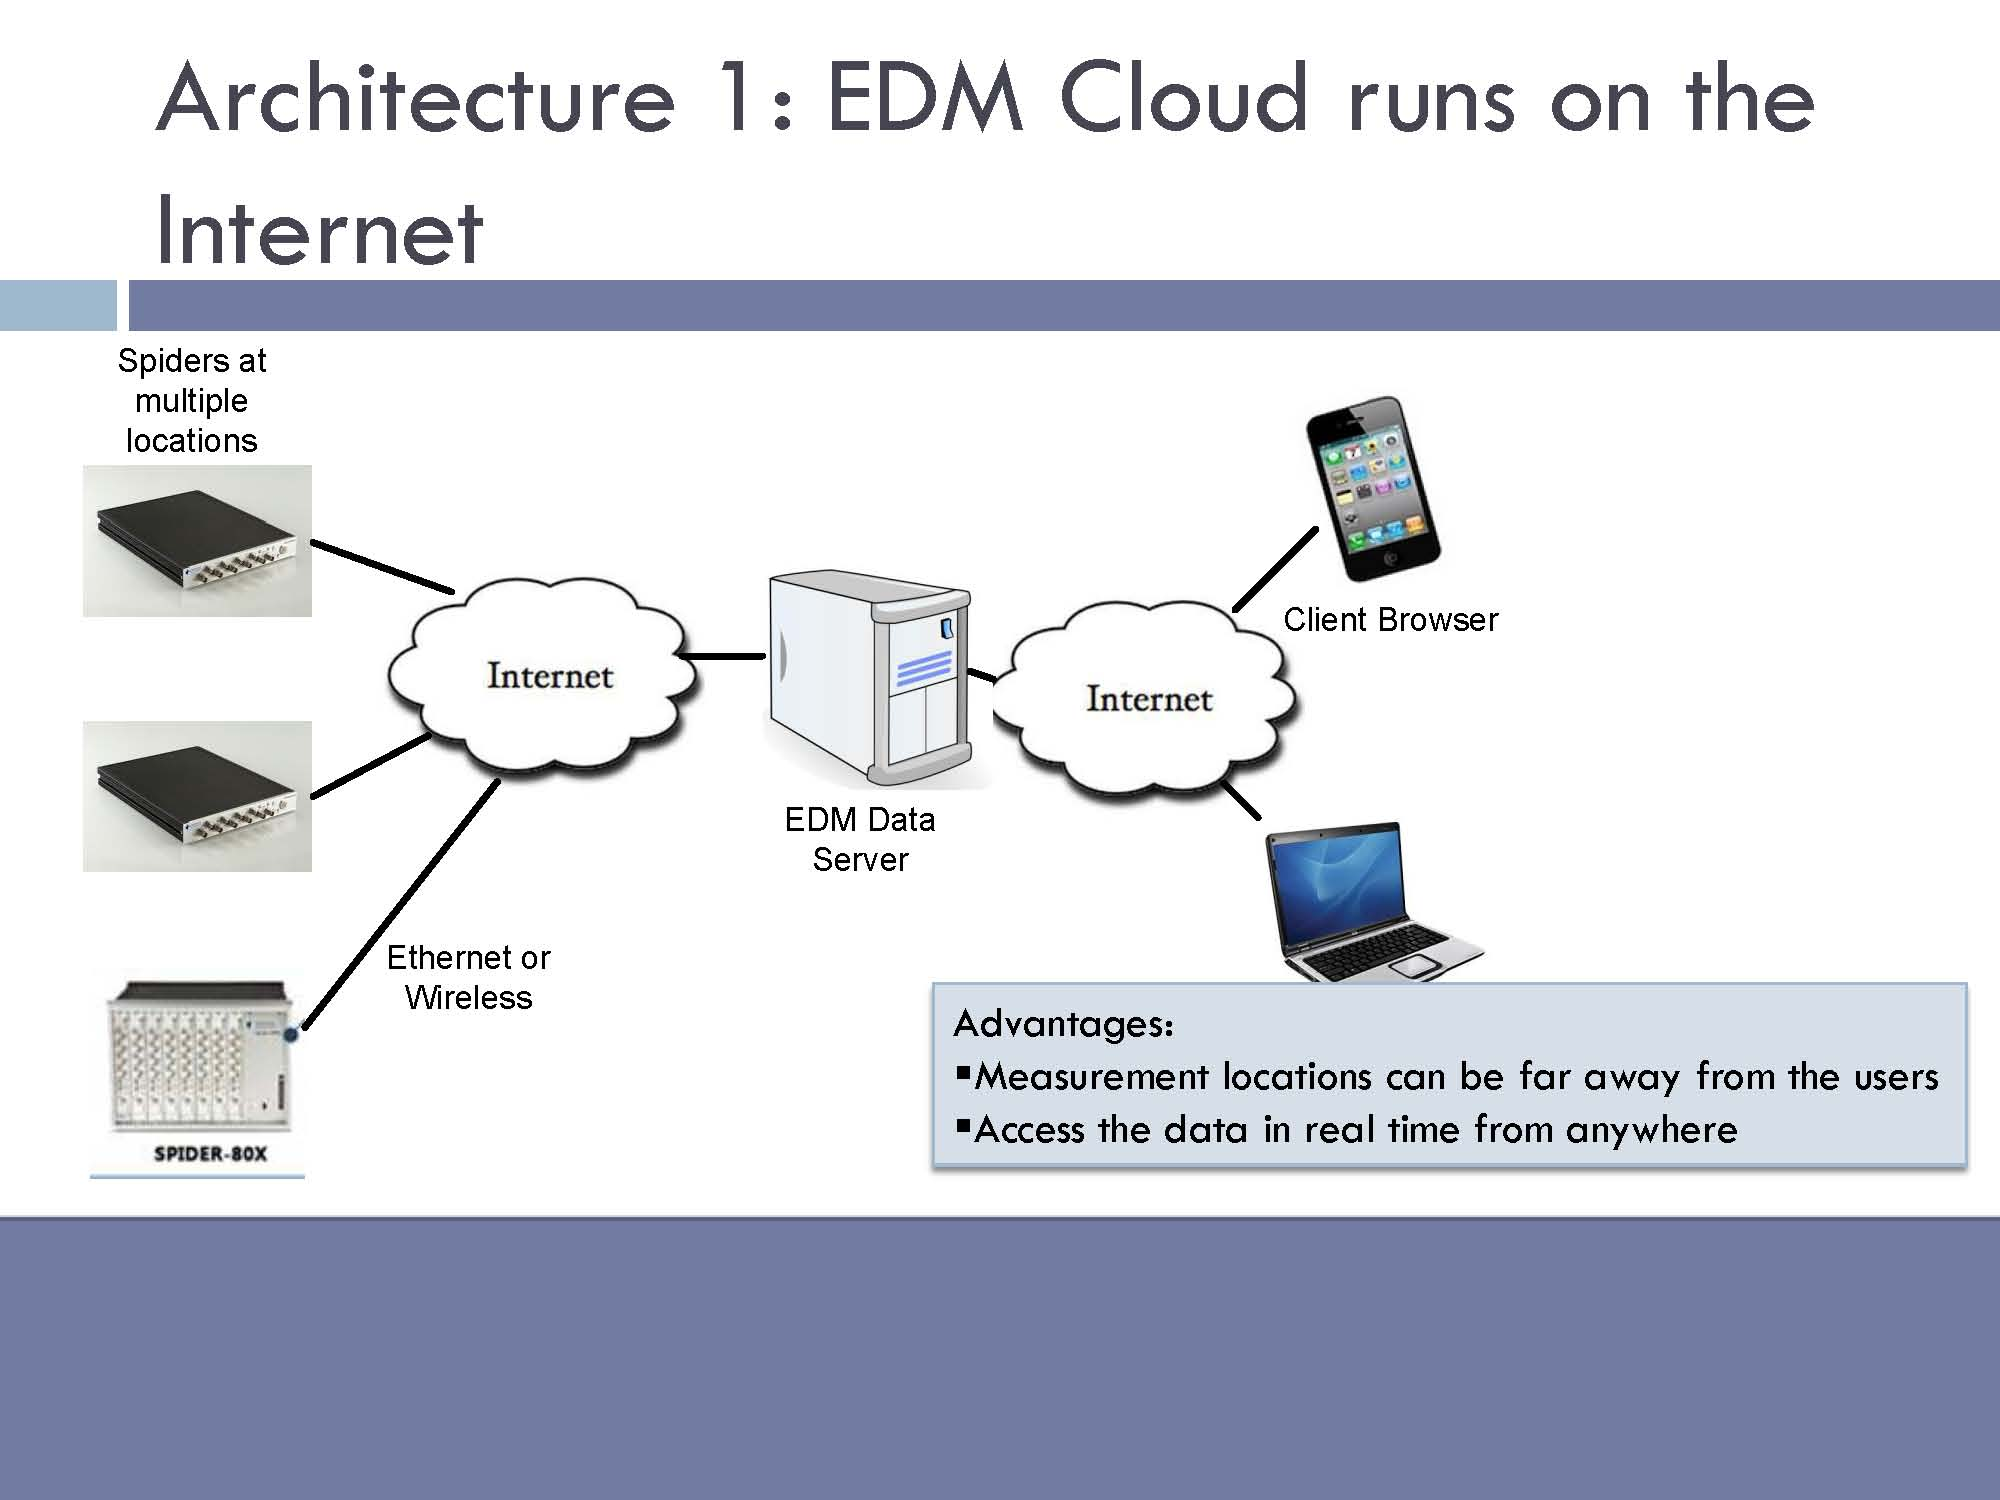 EDM Cloud runs on the internet. Advantages are: measurement locations can be far away from users, access data in real time from anywhere